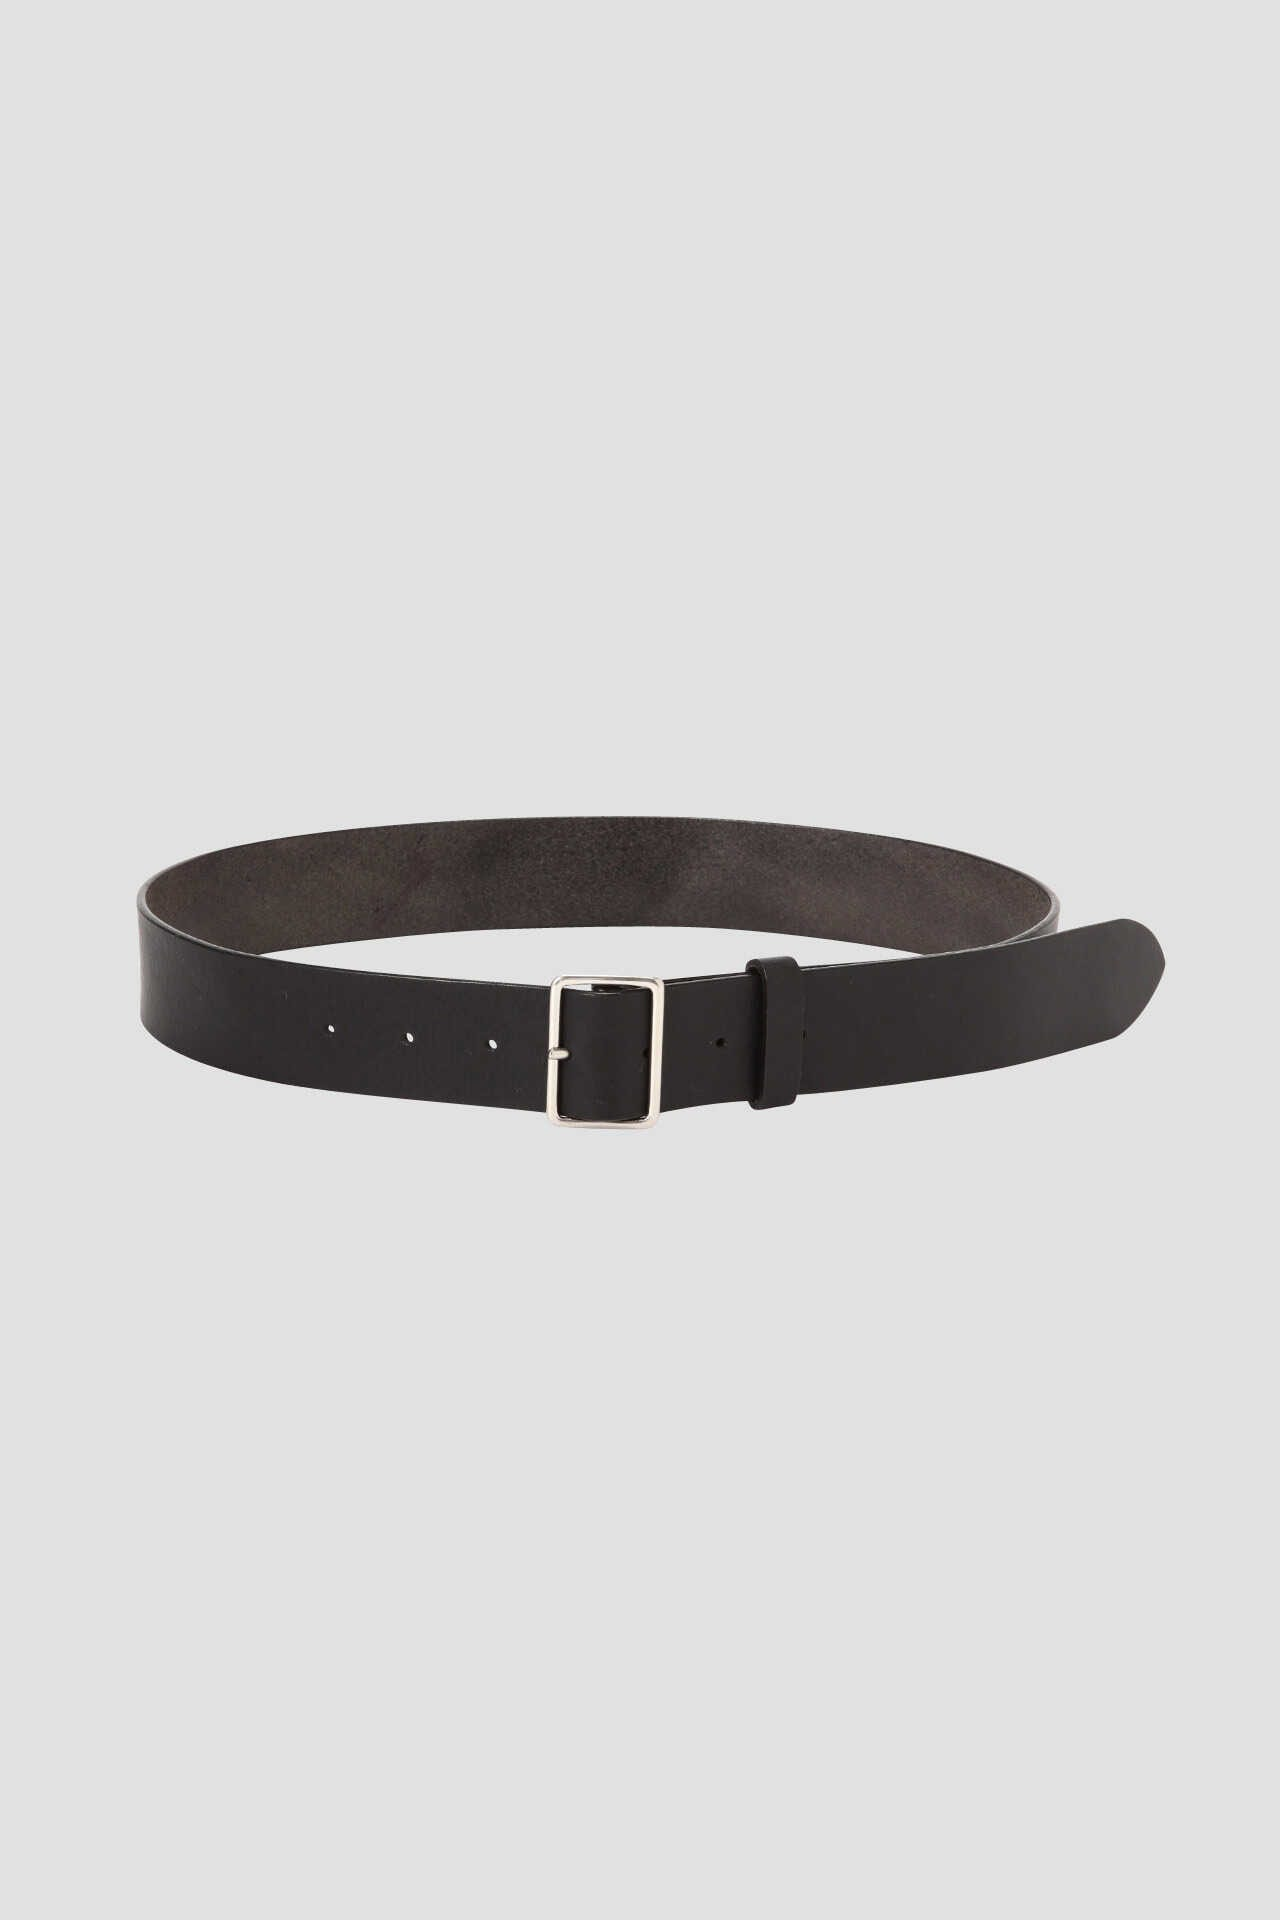 WIDE LEATHER BELT7